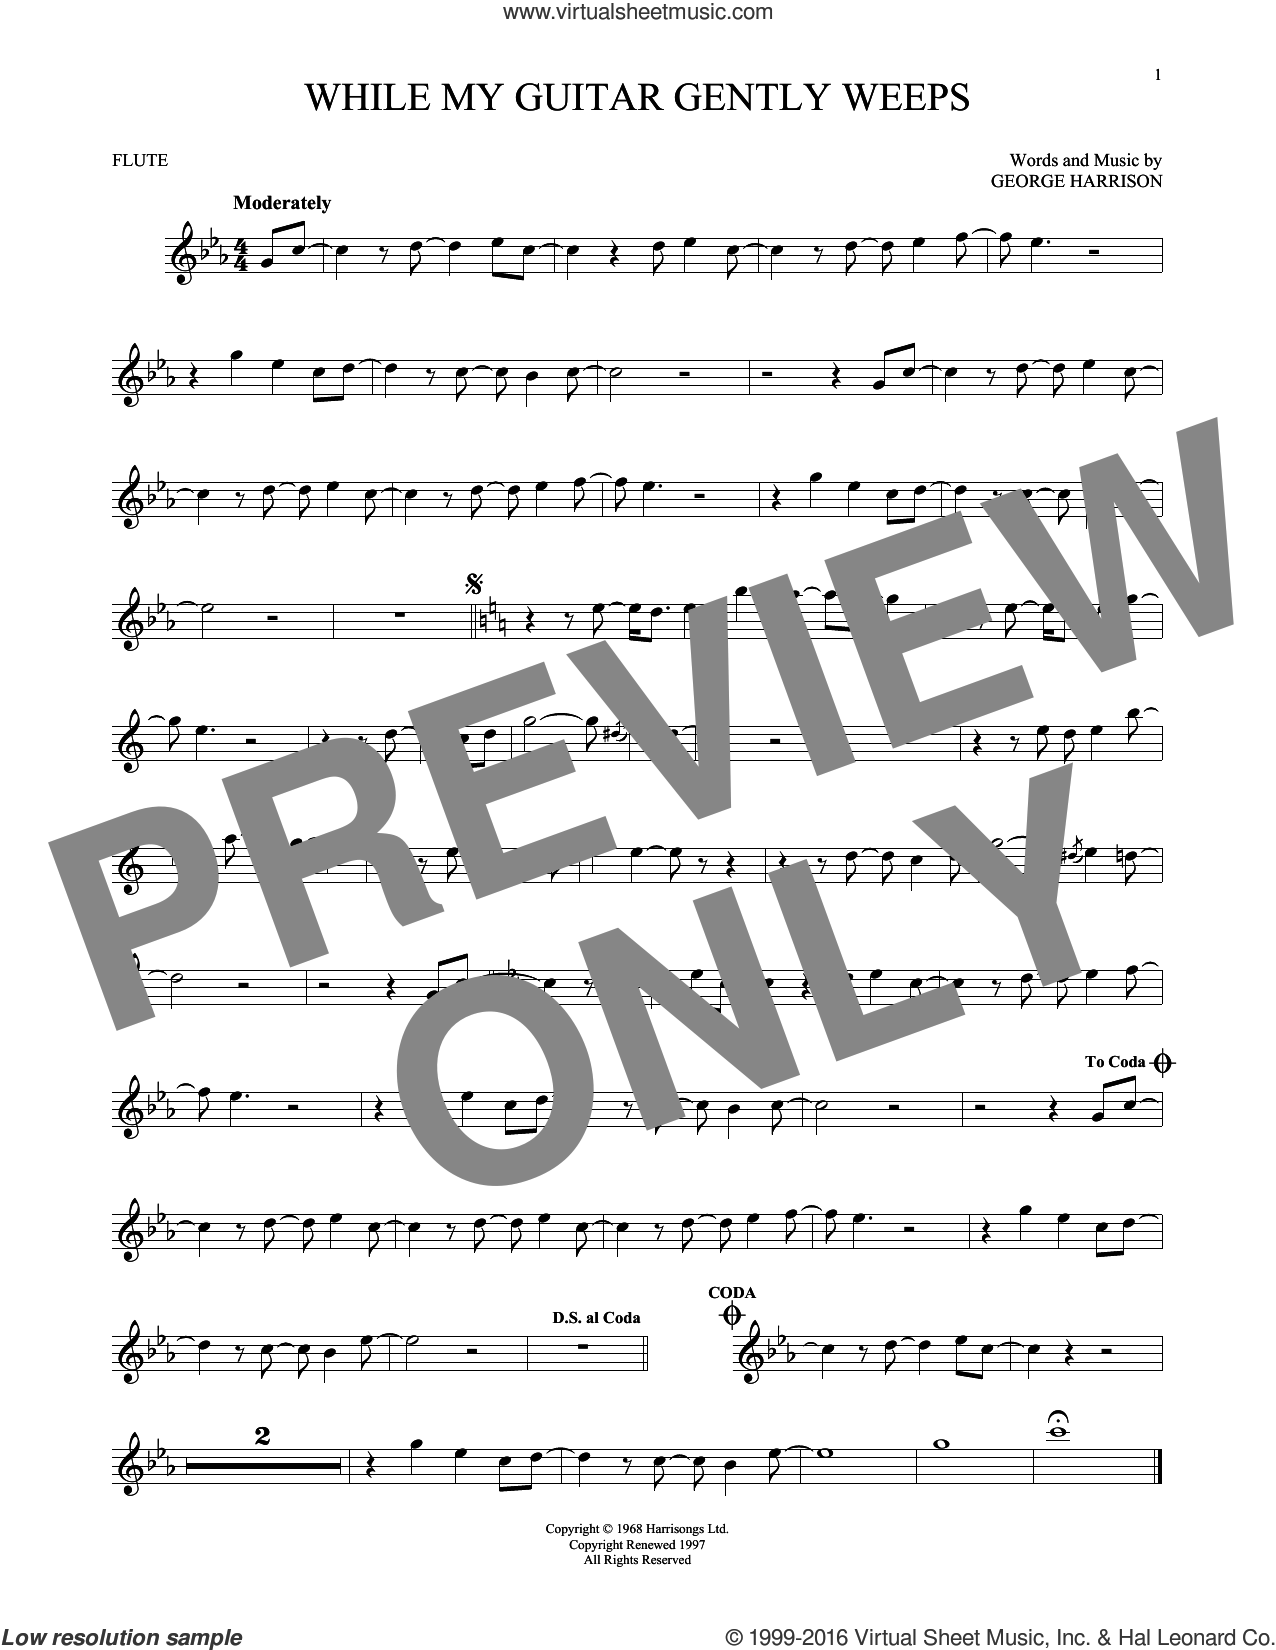 While My Guitar Gently Weeps sheet music for flute solo by The Beatles. Score Image Preview.